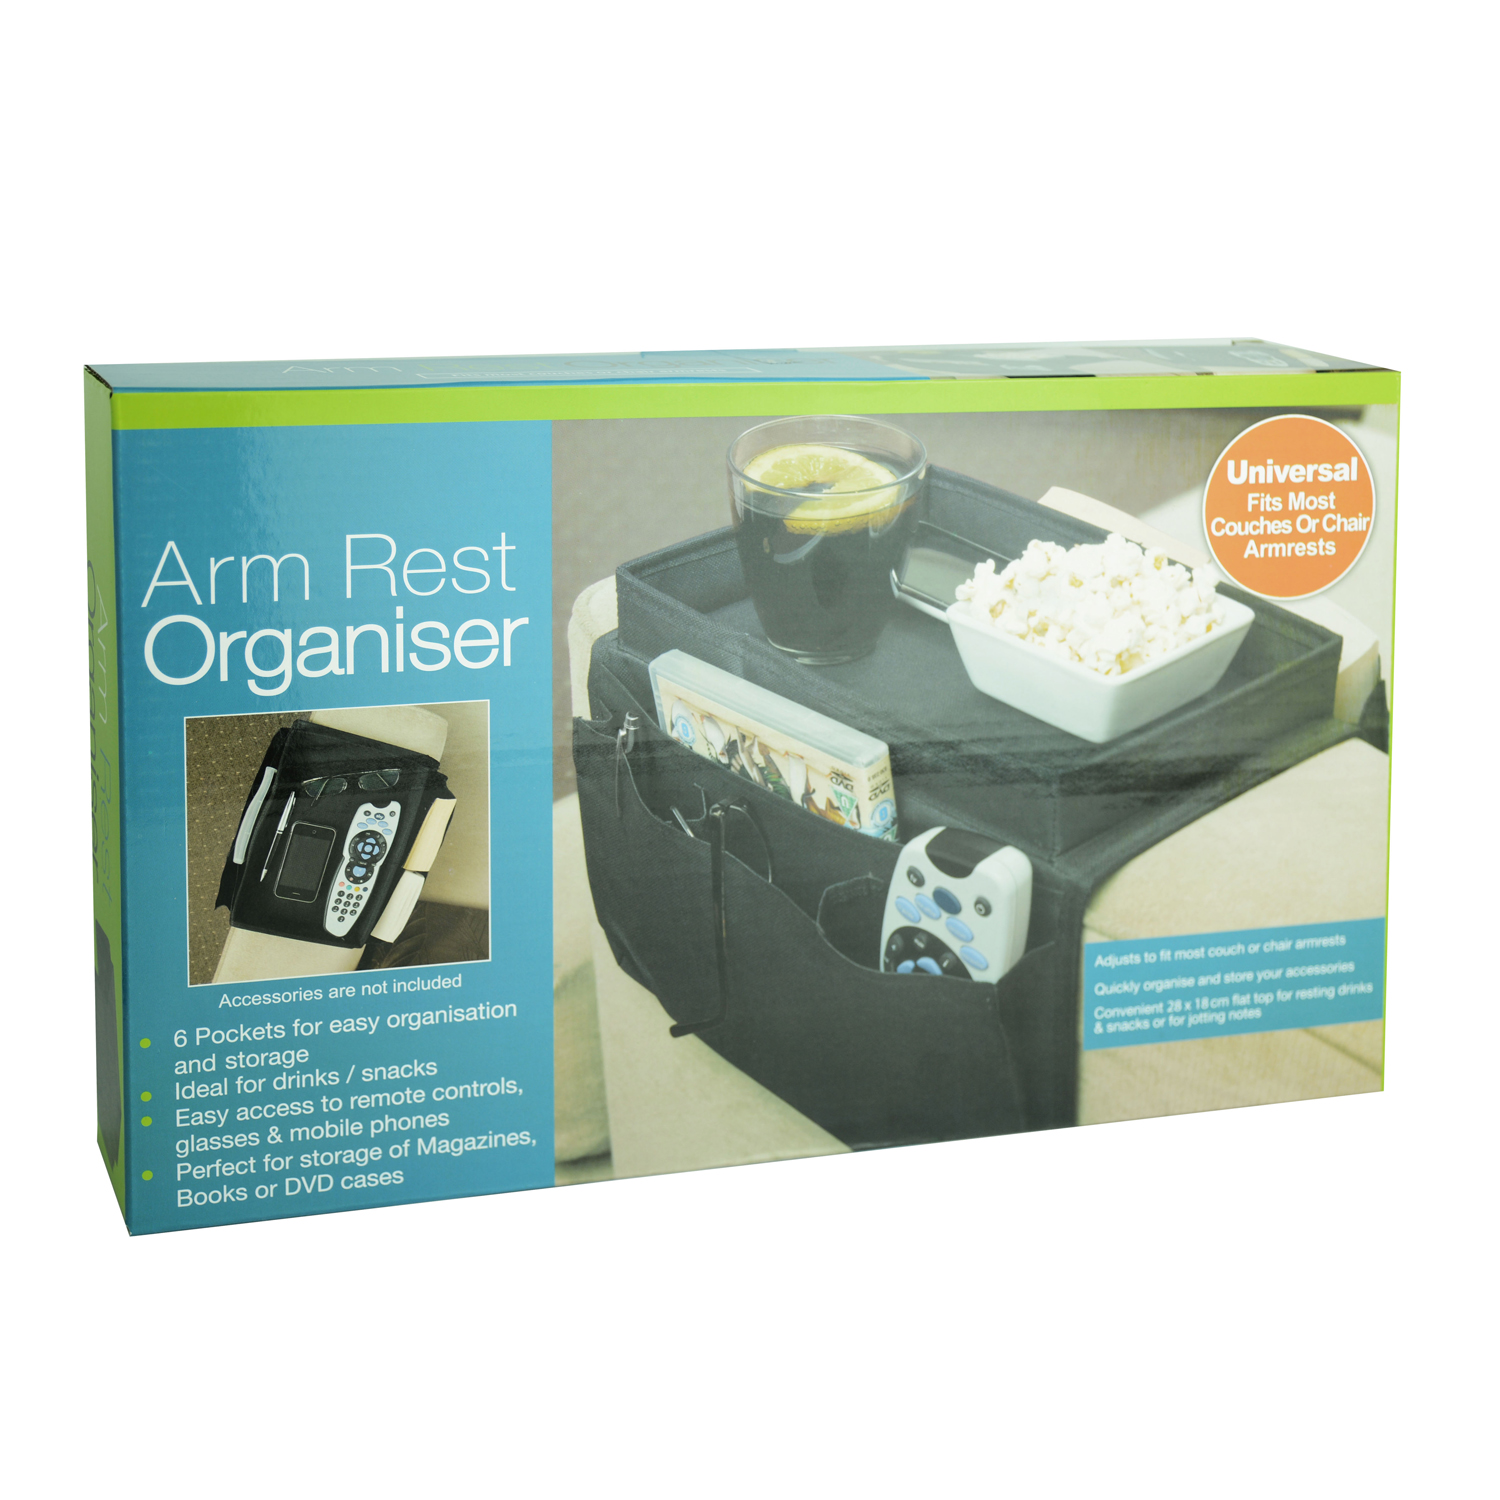 Arm Rest Organiser